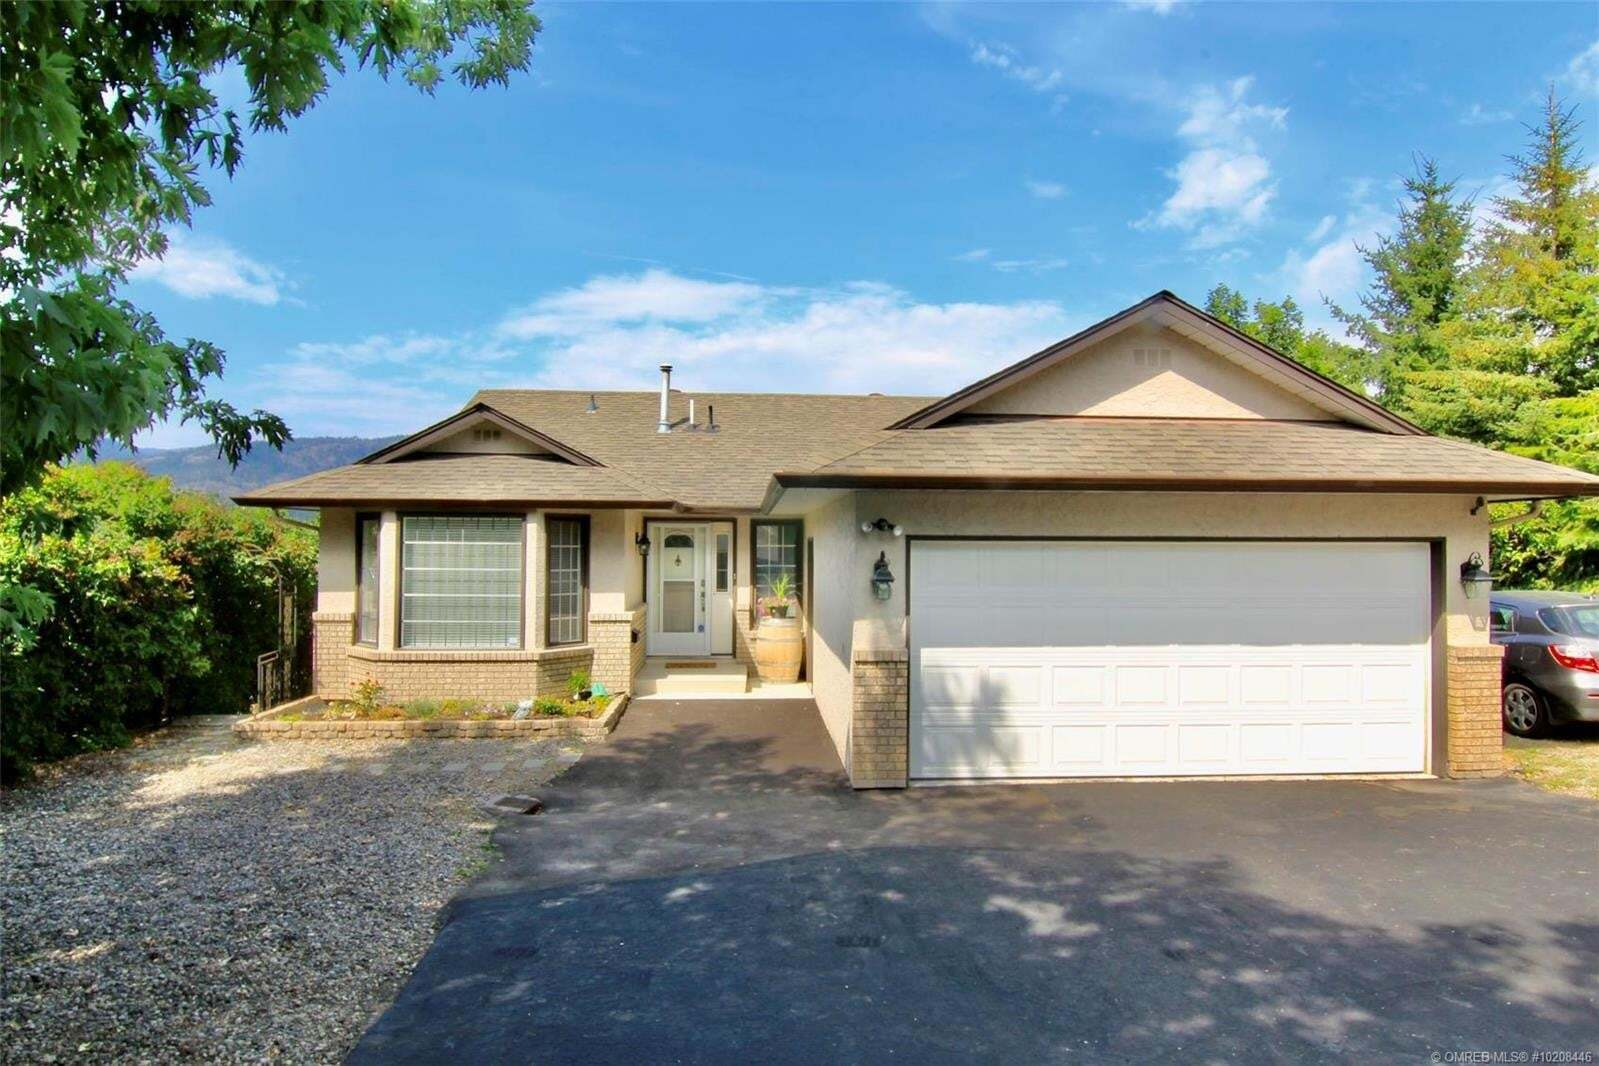 House for sale at 1120 Lynden Rd West Kelowna British Columbia - MLS: 10208446